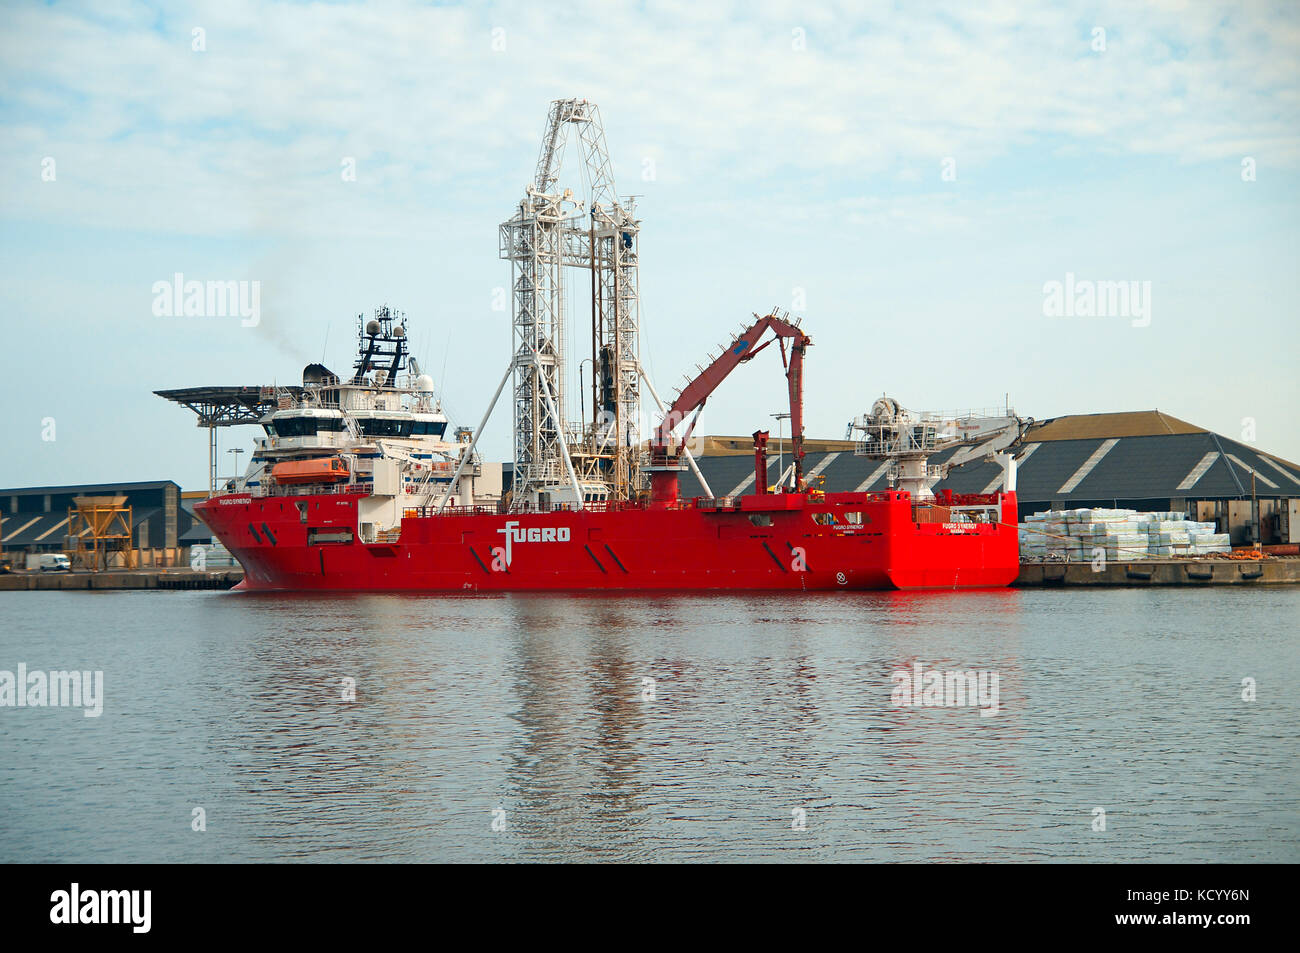 The Fugro Synergy , here in St Malo port, represents a new generaton high technology drillship built to deliver - Stock Image